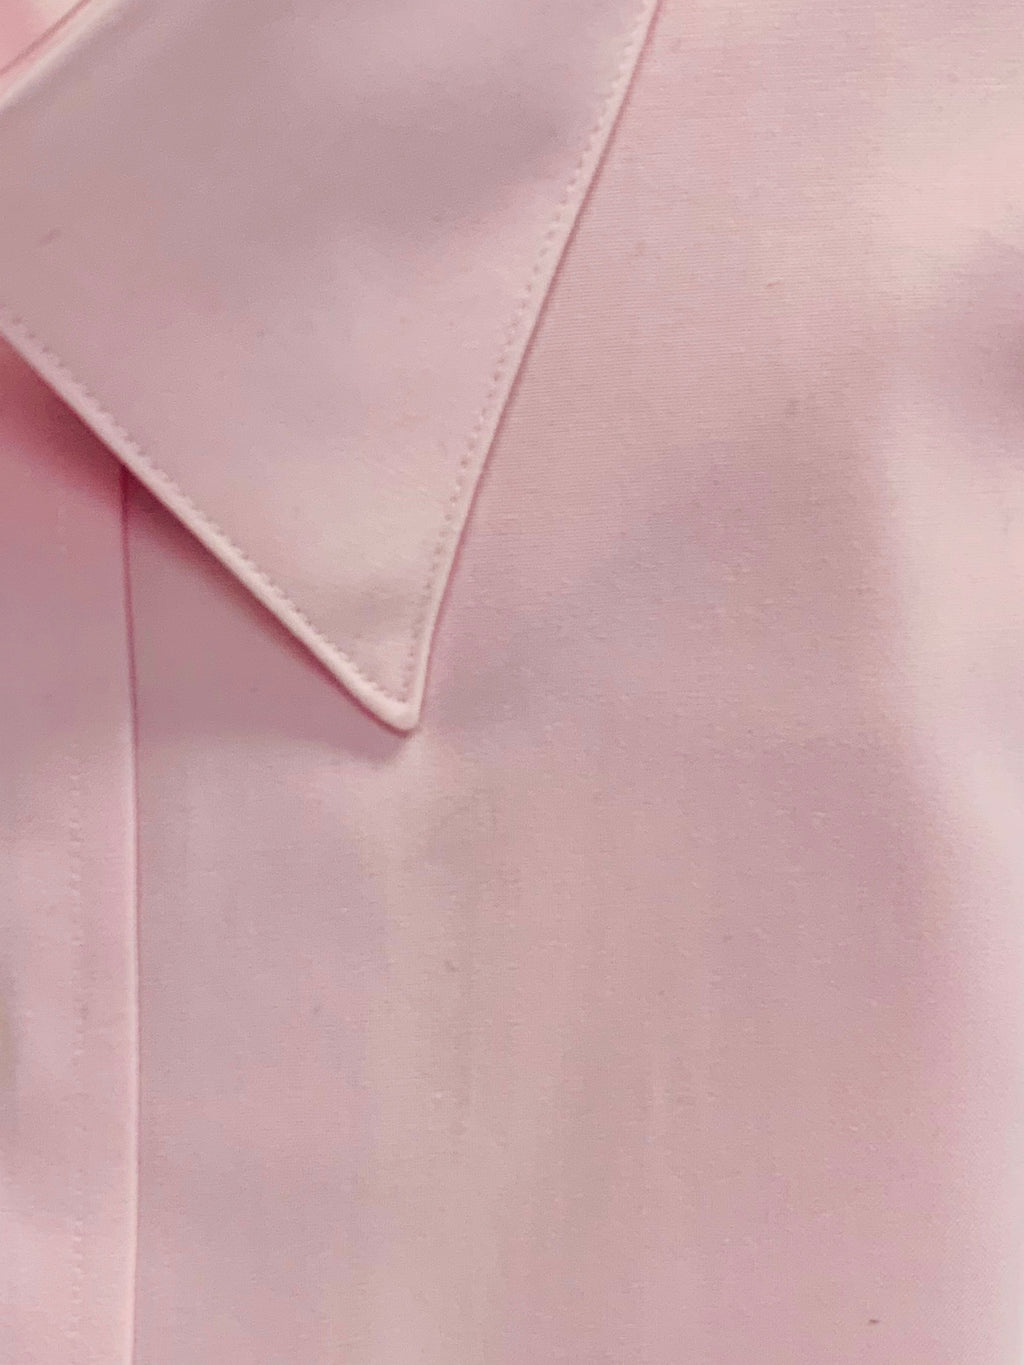 Giovanni's Modified Spread Dress Shirt - Pink-60